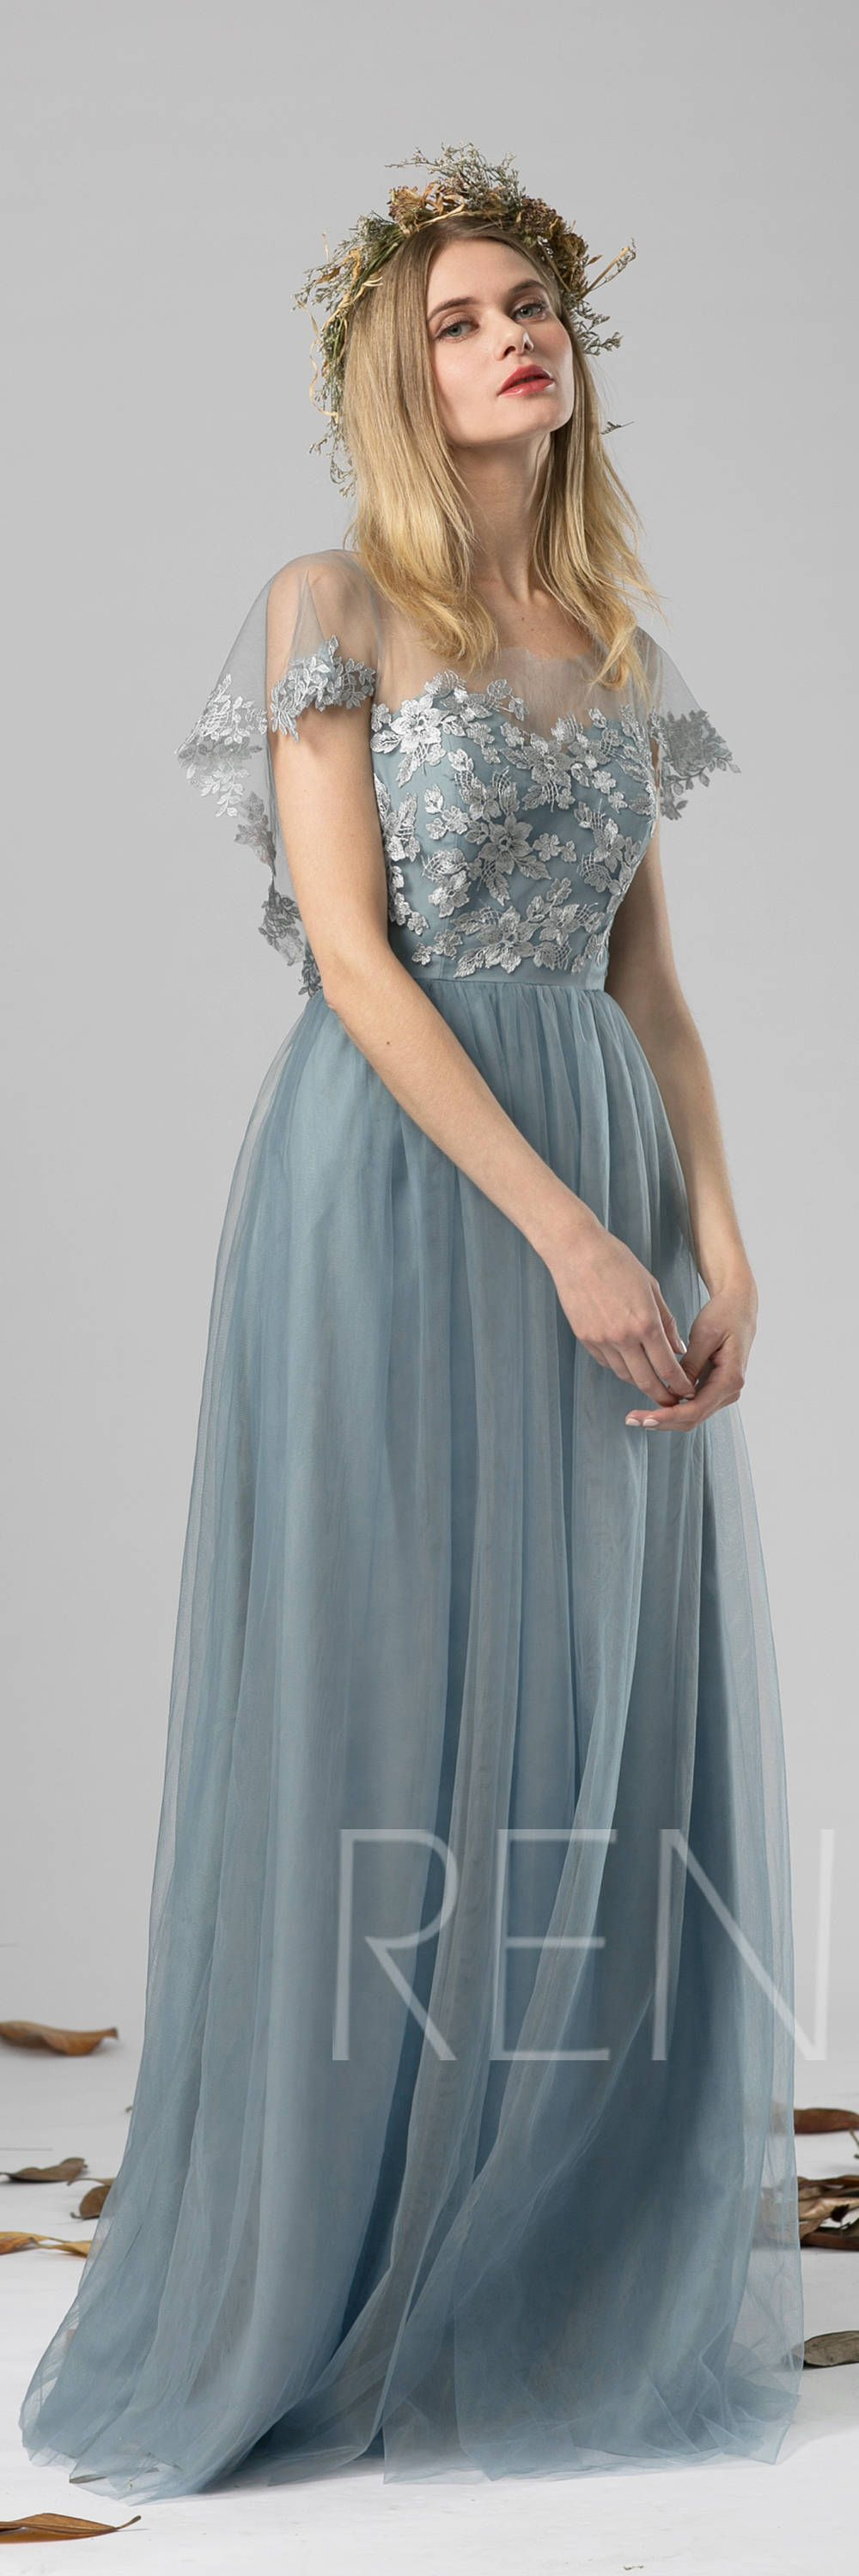 Bridesmaid Dress Dusty Blue Tulle Dress Wedding Dress Lace Ruffle Sleeve Party Dress Round Neck Maxi Dress Open Back Gowns Of Elegance Dresses Fashion Dresses [ 3000 x 1000 Pixel ]